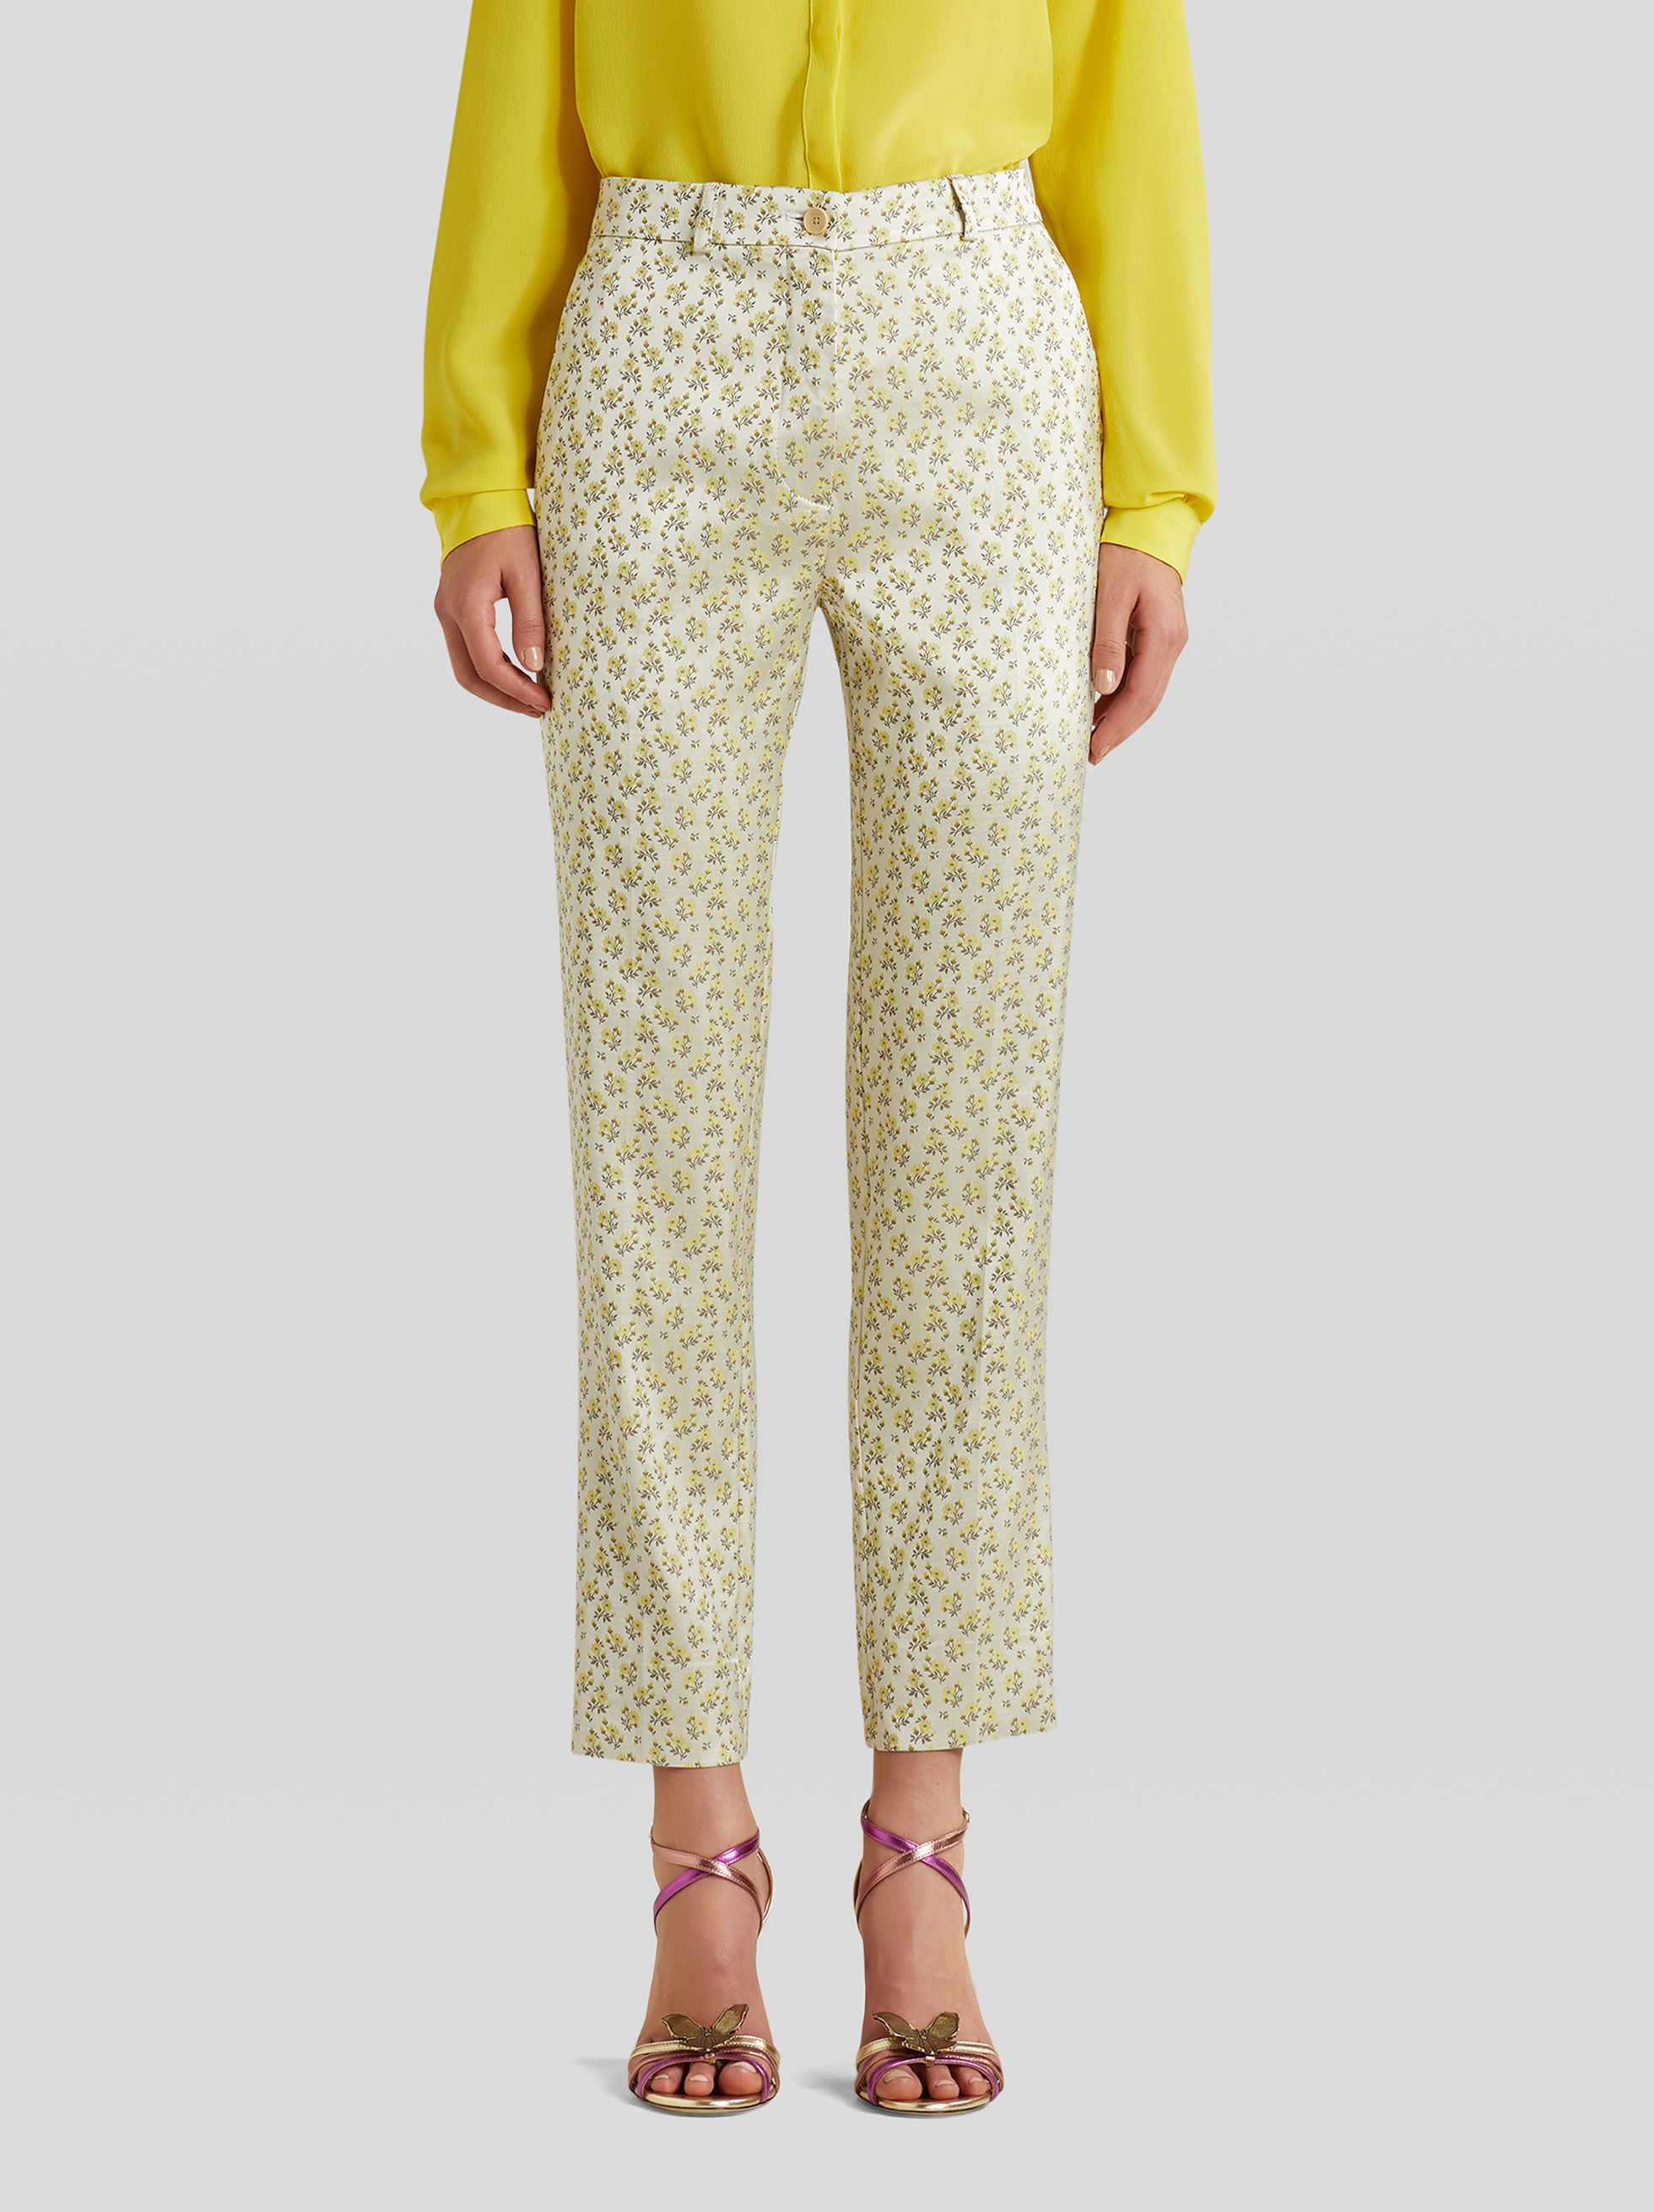 TAILORED FLORAL JACQUARD TROUSERS